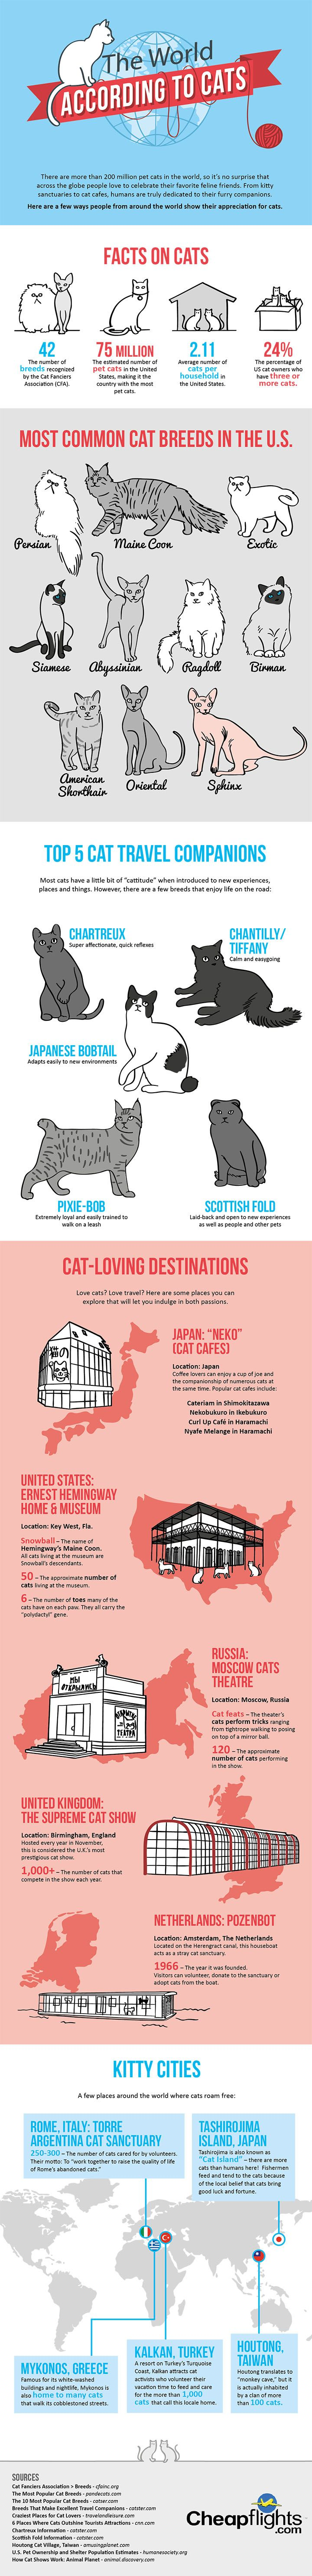 A Guide to the World According to Cats